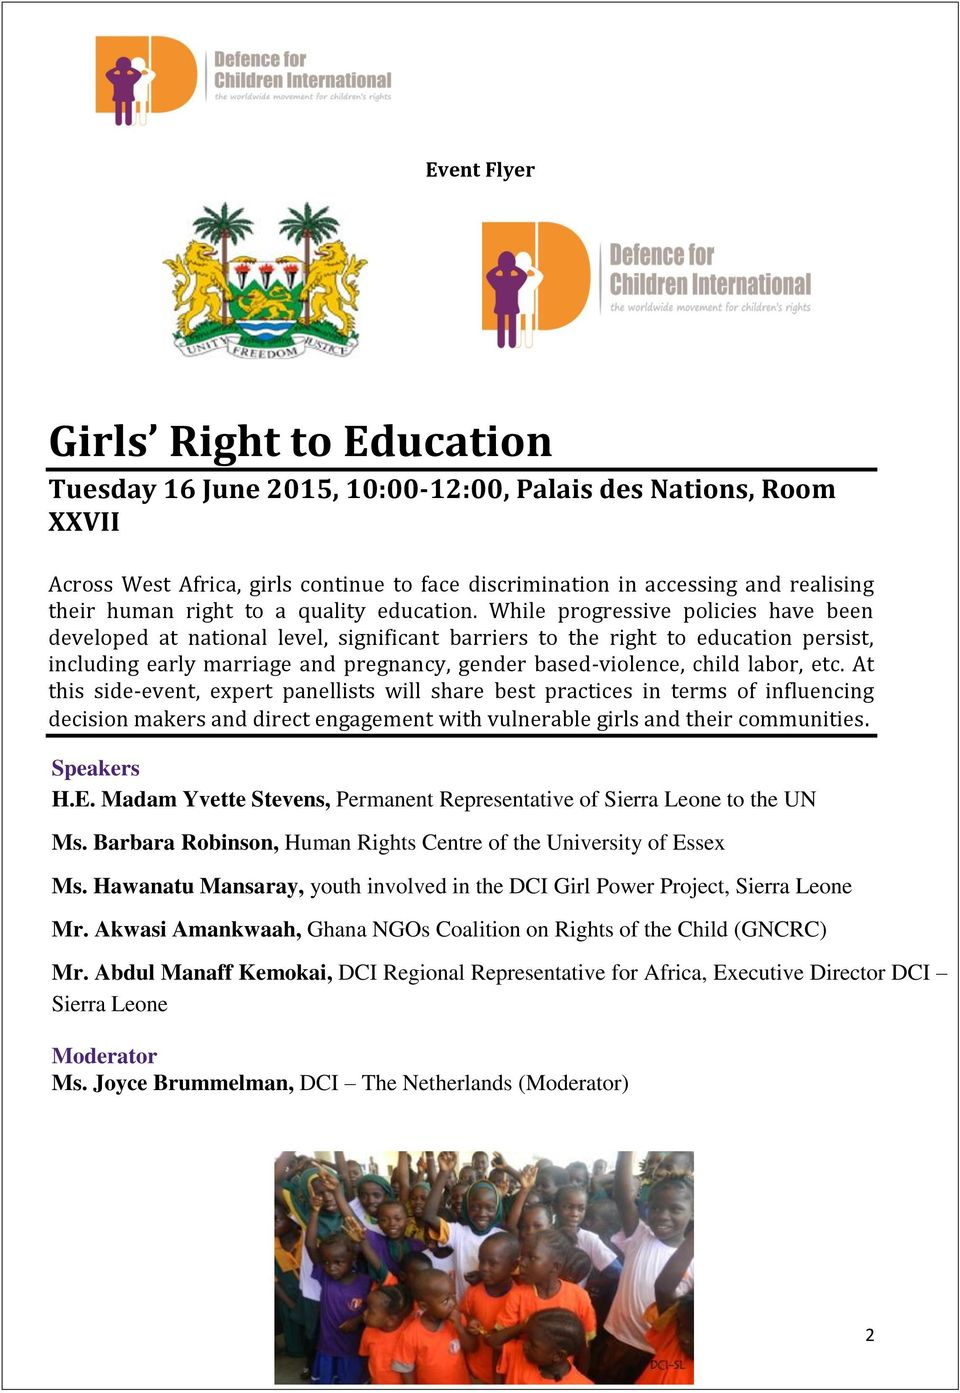 While progressive policies have been developed at national level, significant barriers to the right to education persist, including early marriage and pregnancy, gender based-violence, child labor,